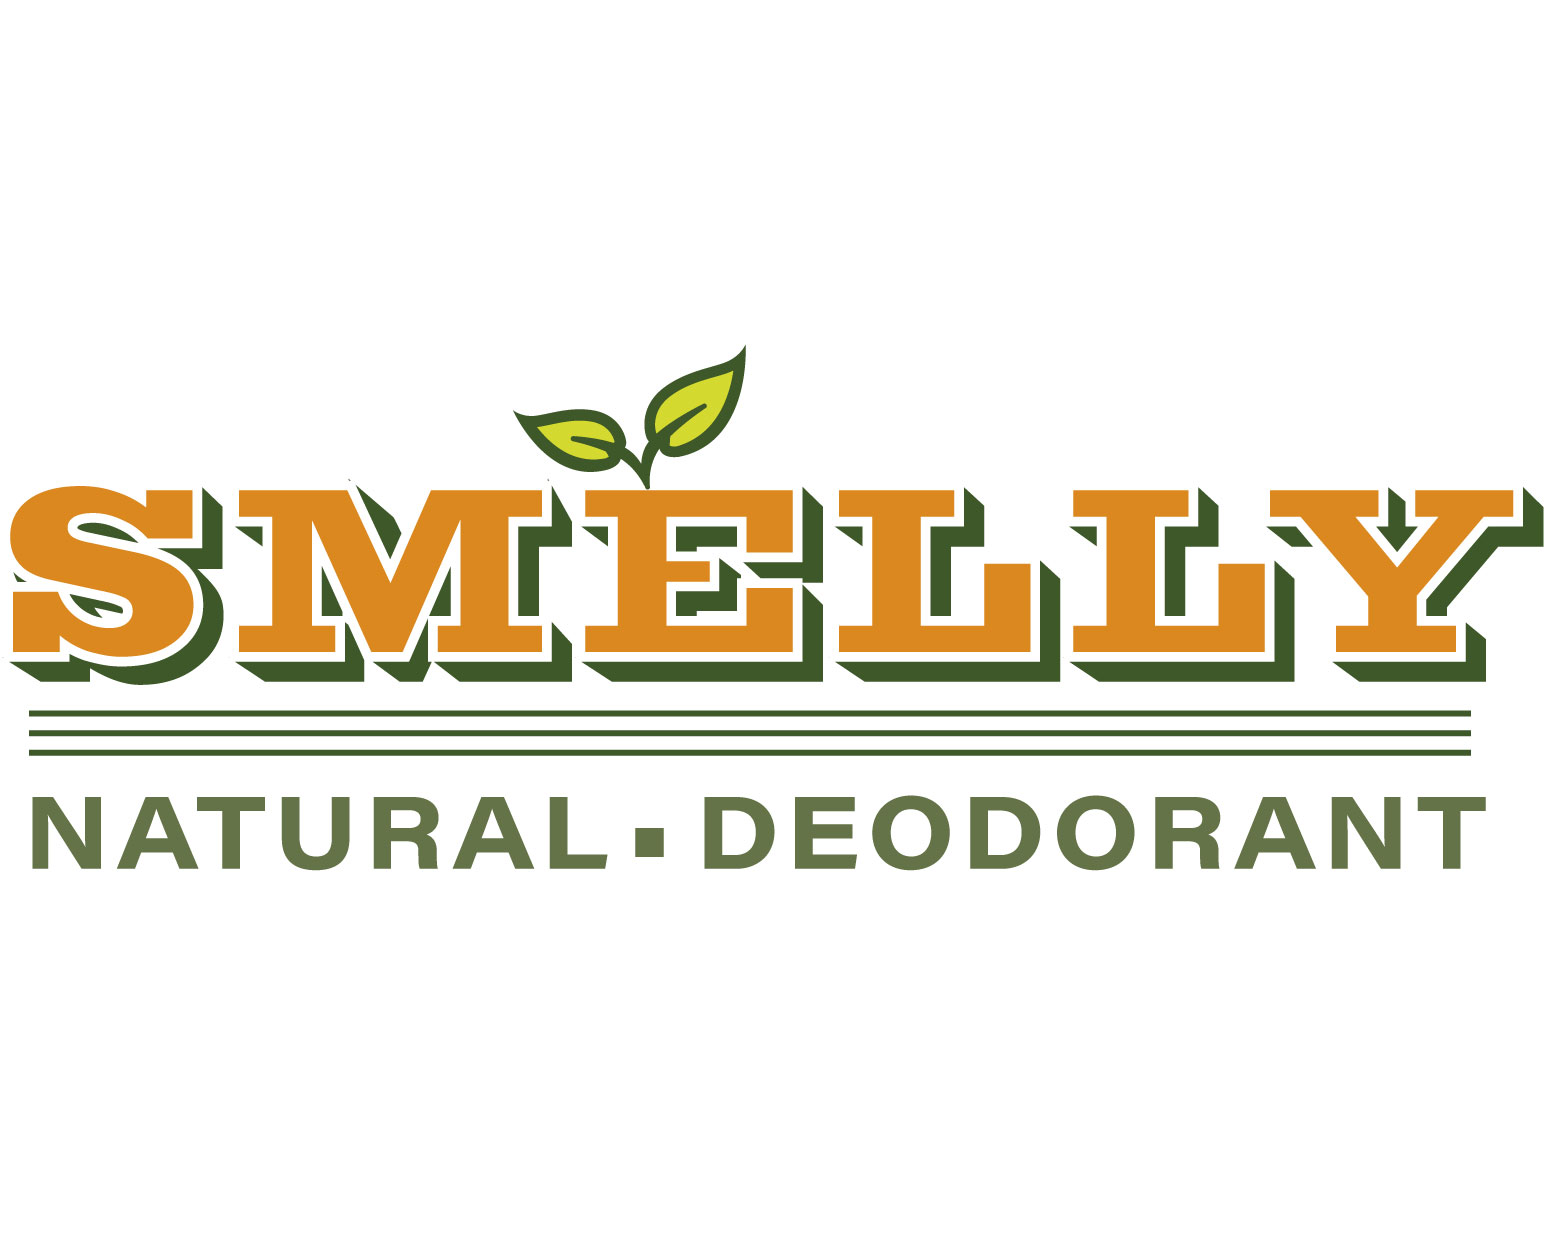 Smelly Natural Deodorant